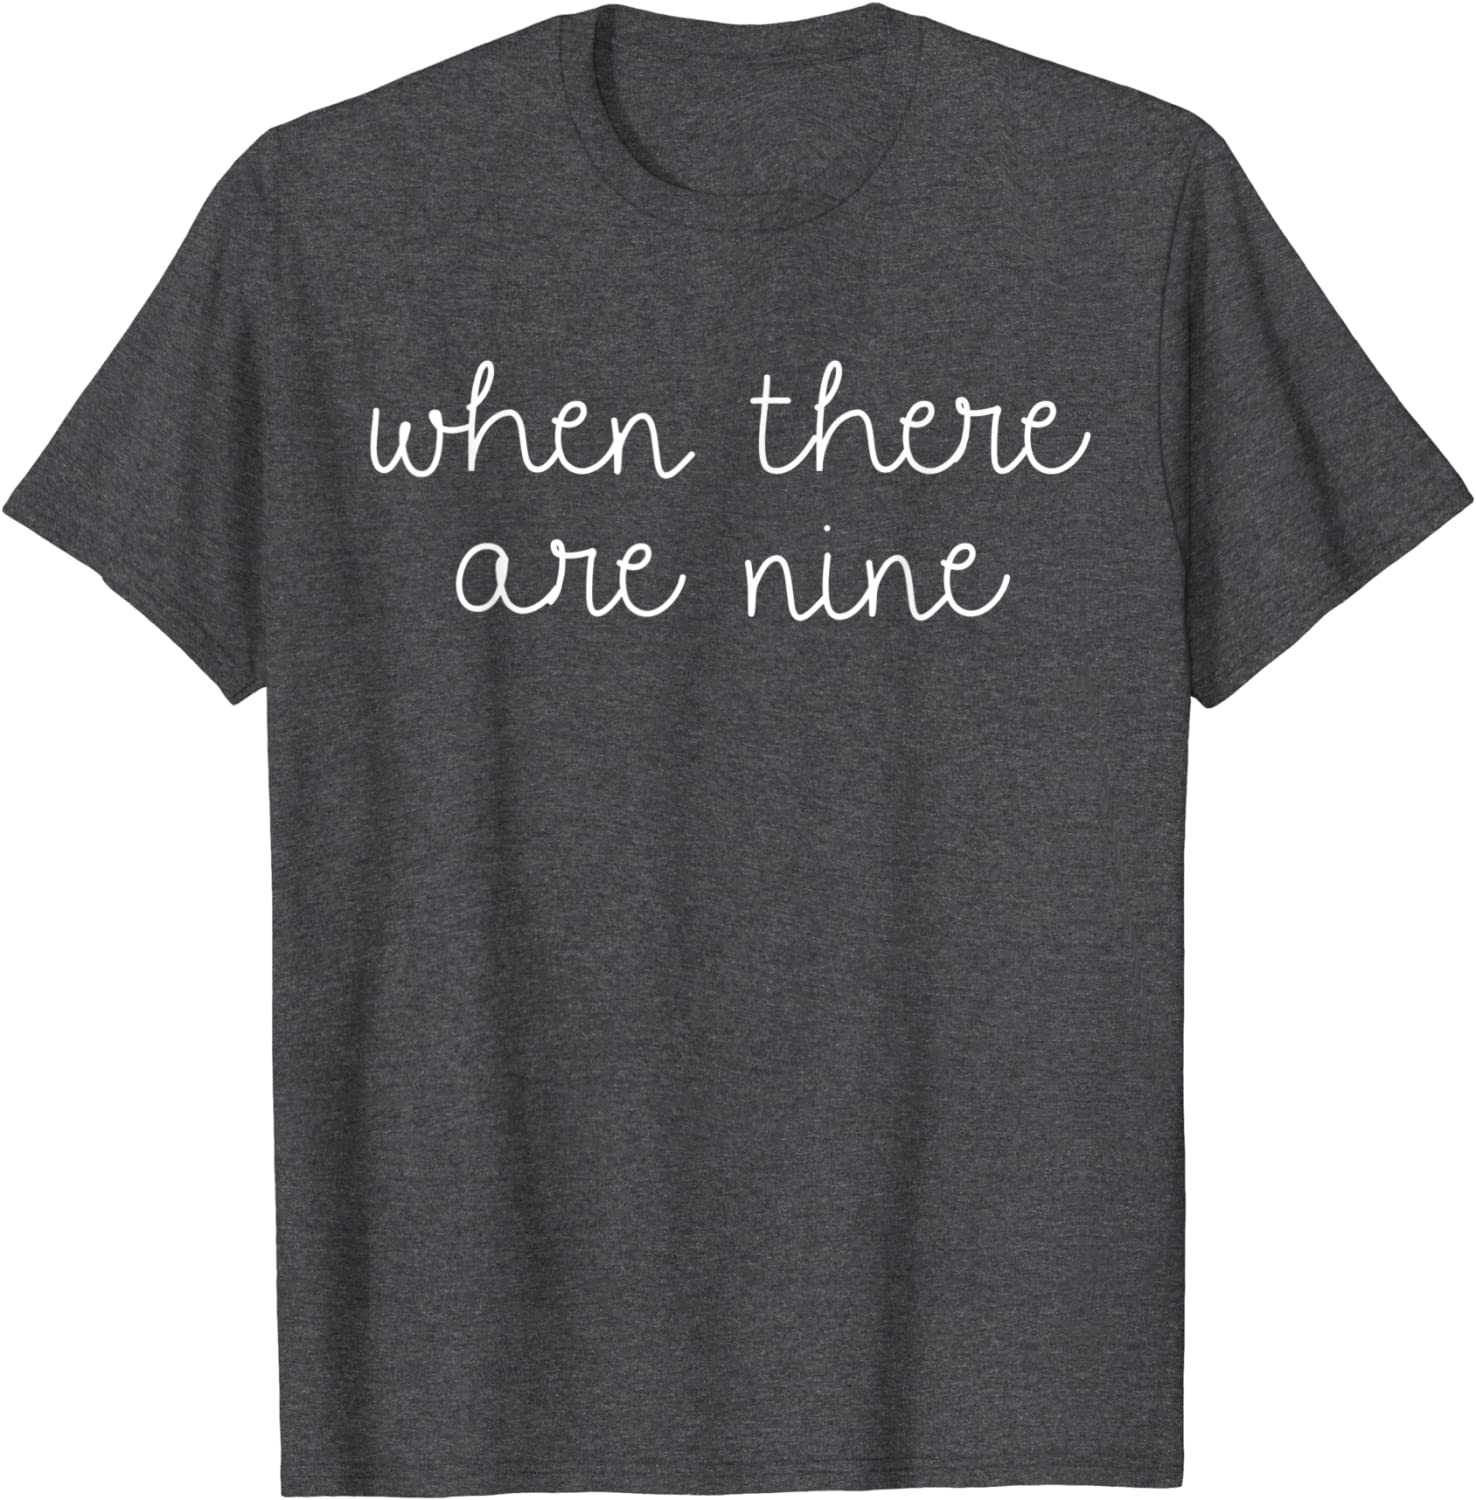 When There Are Nine t-shirt